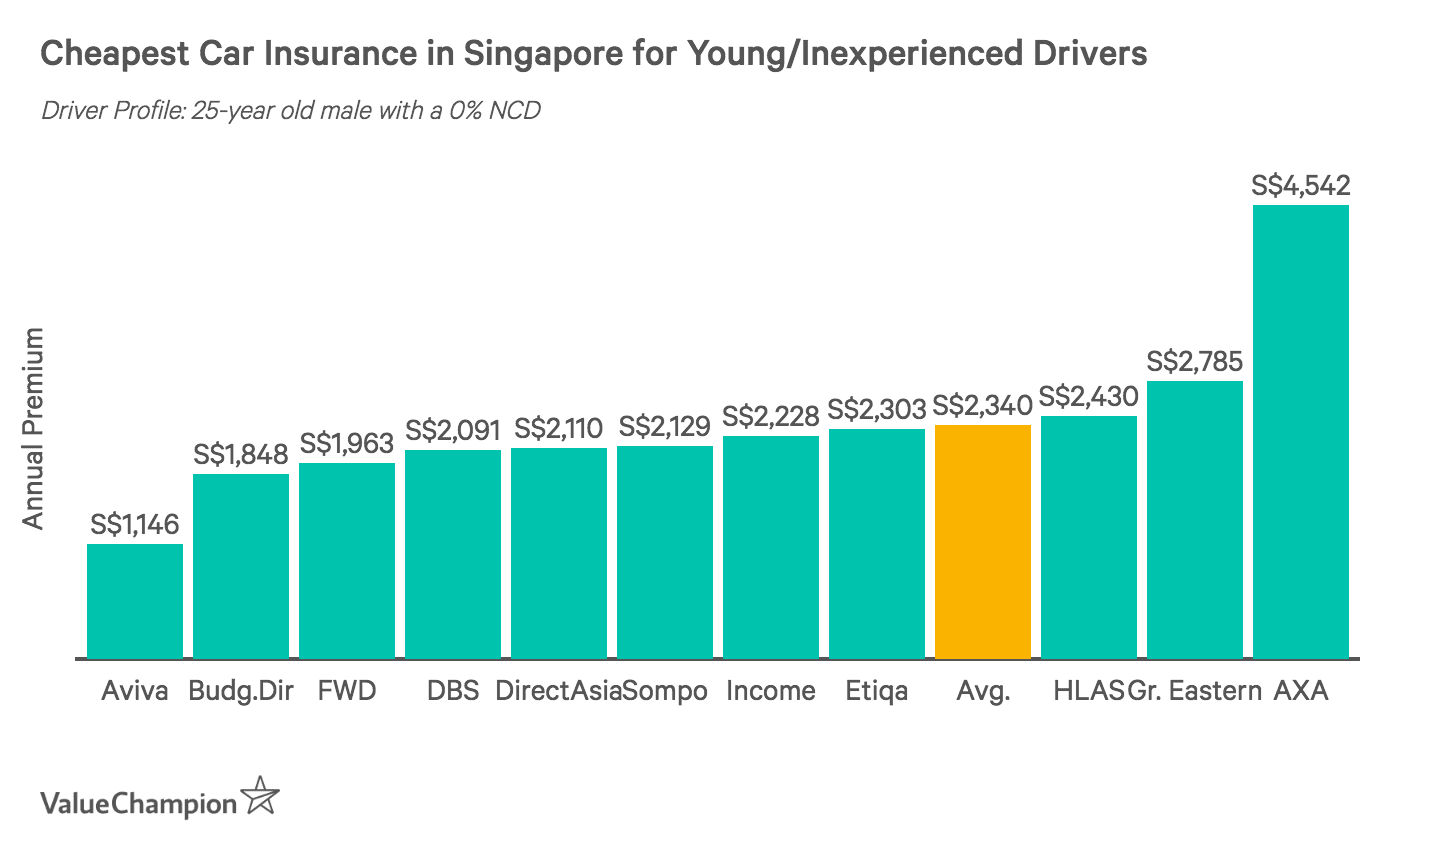 This graph compares the cheapest car insurance premiums in Singapore for young or inexperienced male drivers